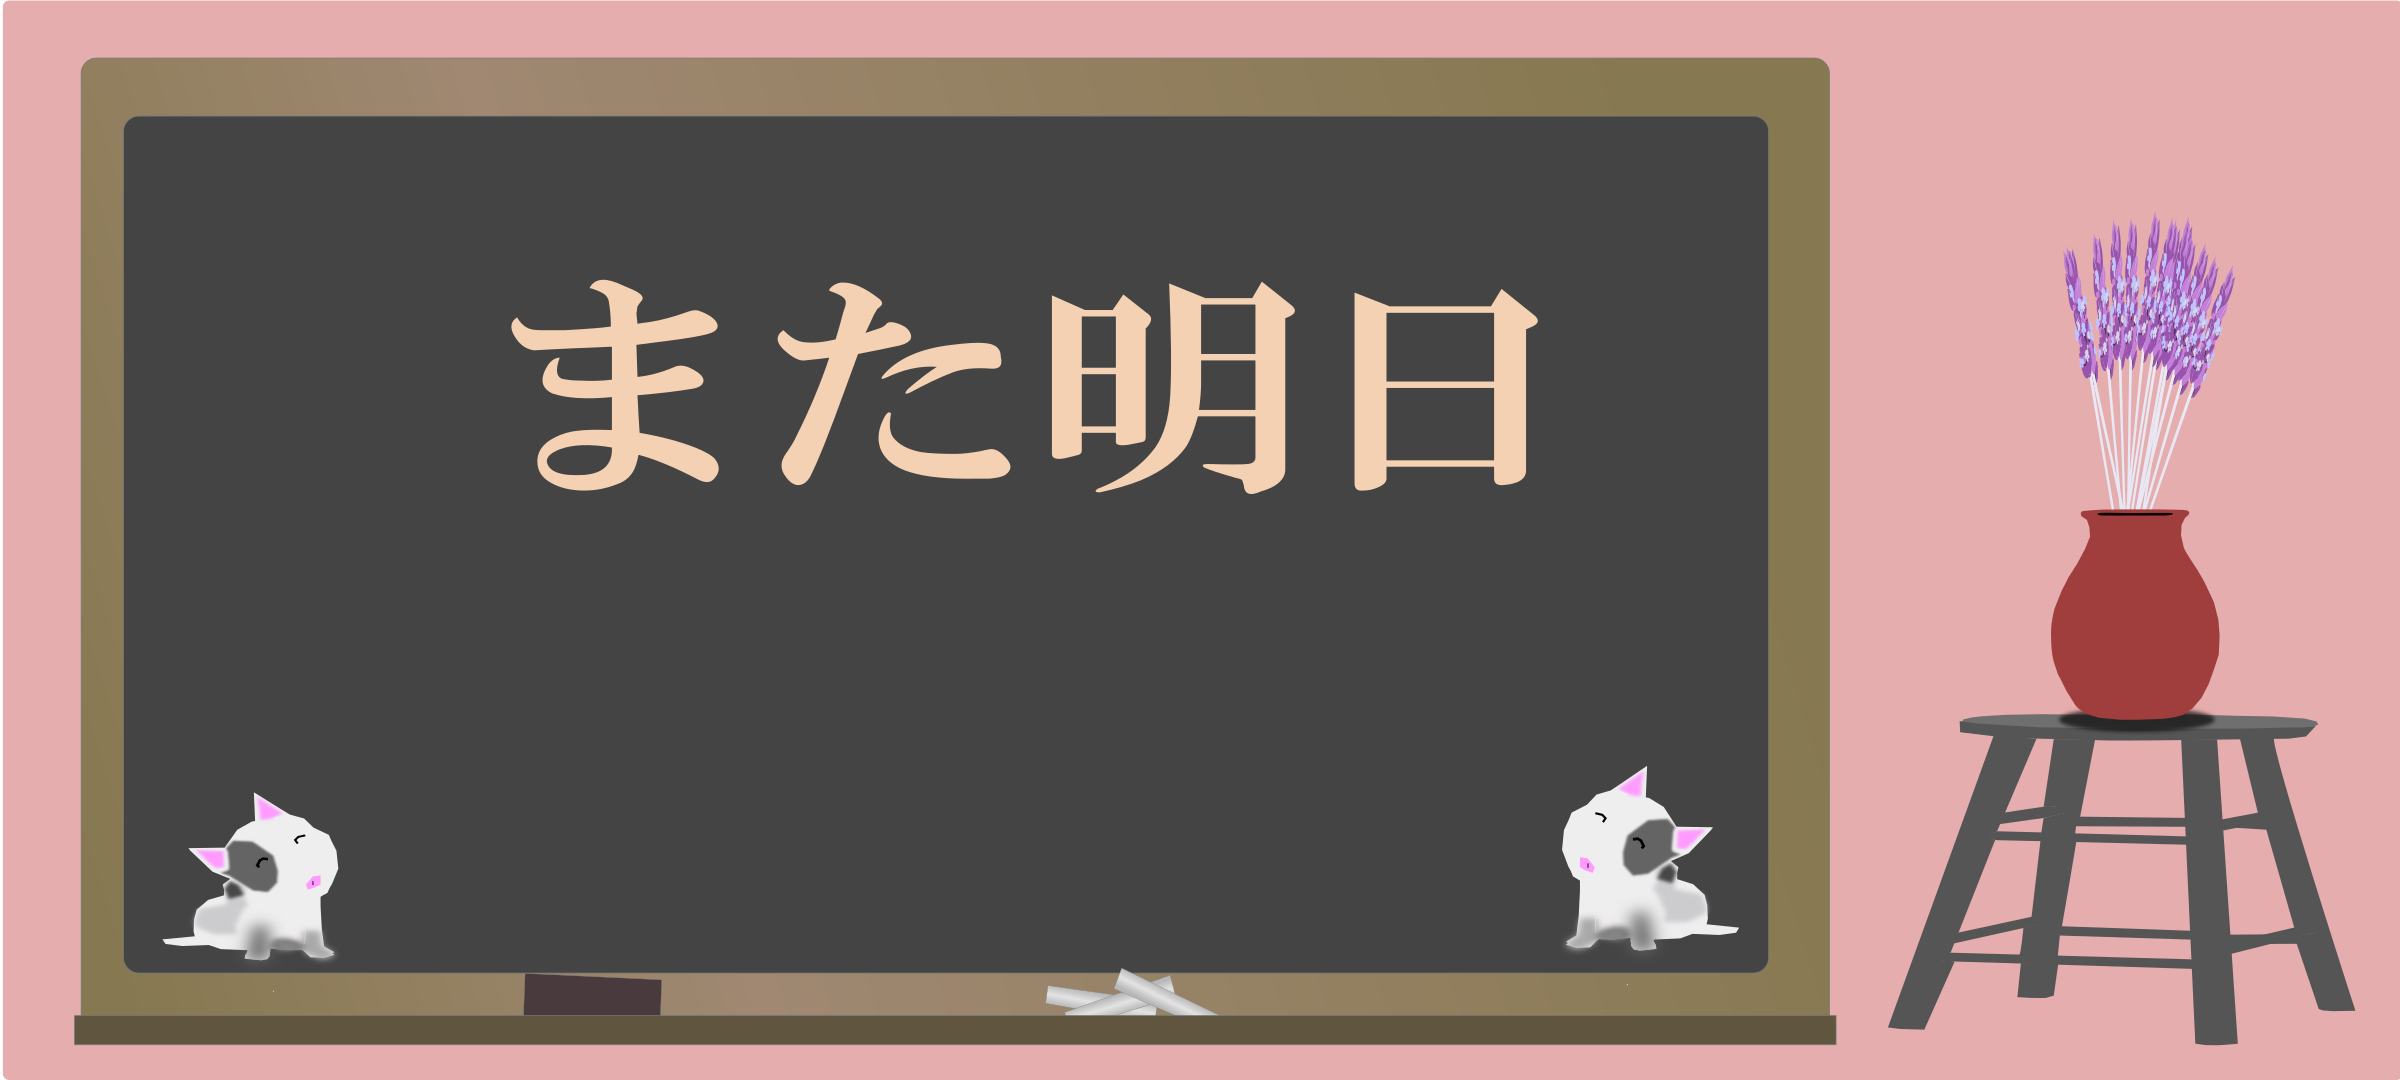 today's kanji-77-mataasita by yamachem